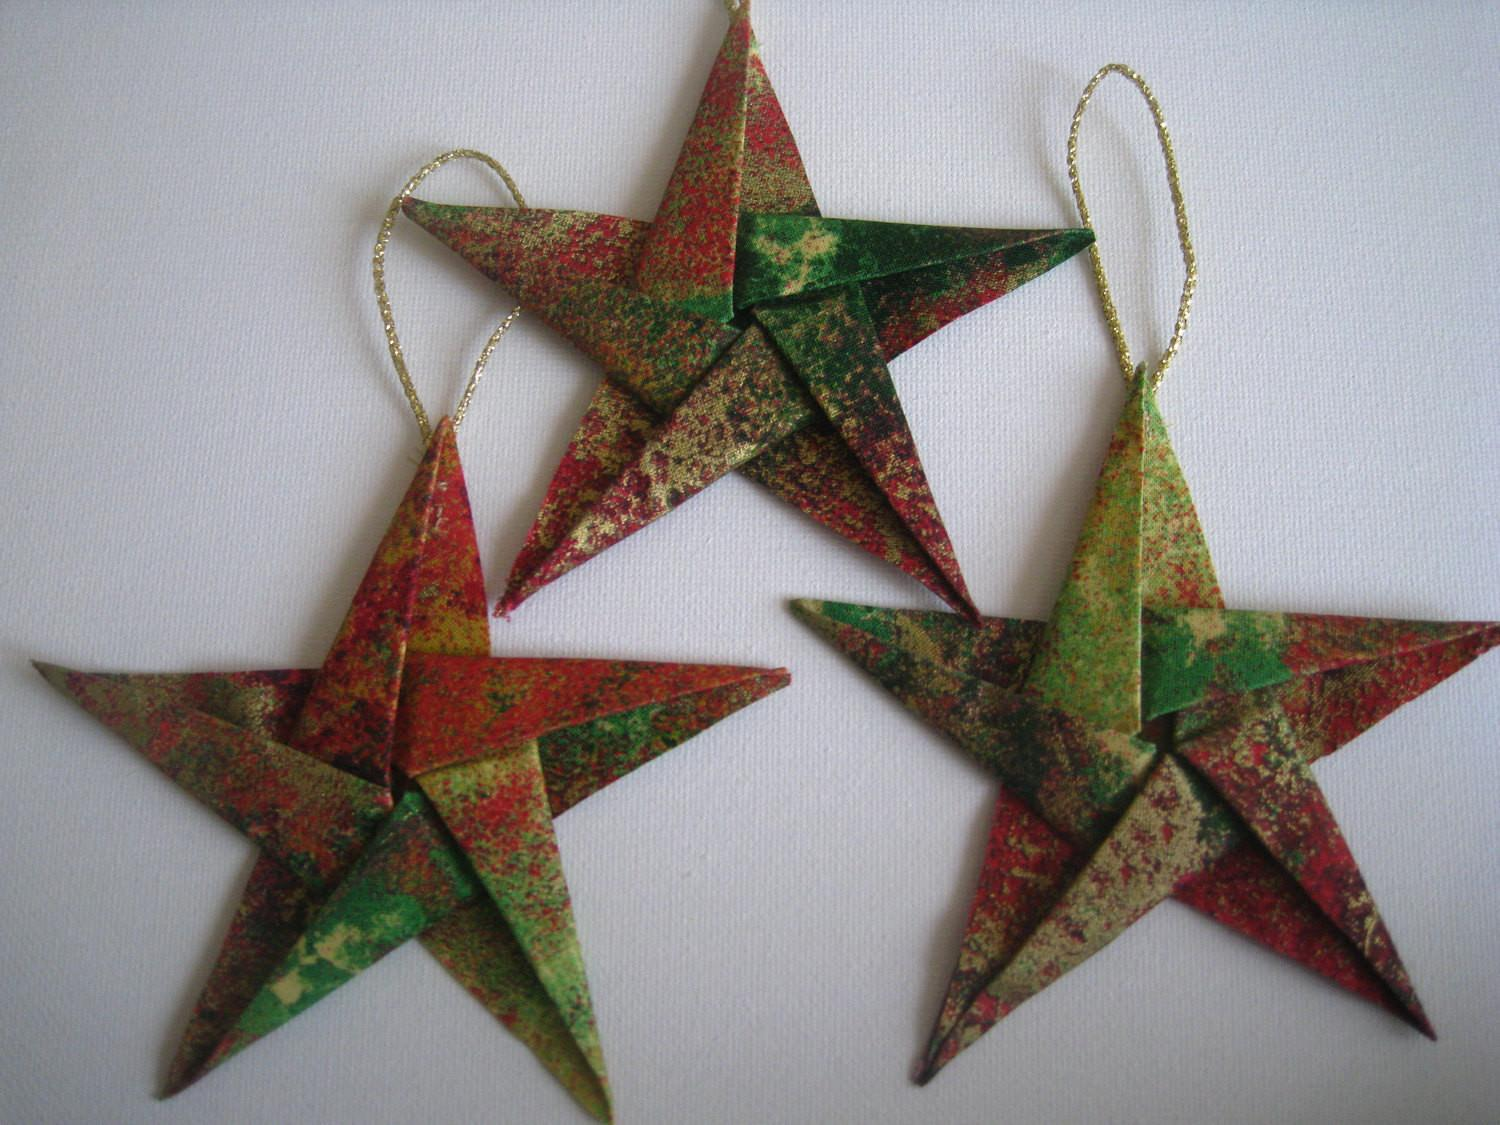 Easy Origami ornaments - origami star. DIY Wall hanging decor with ... | 1125x1500